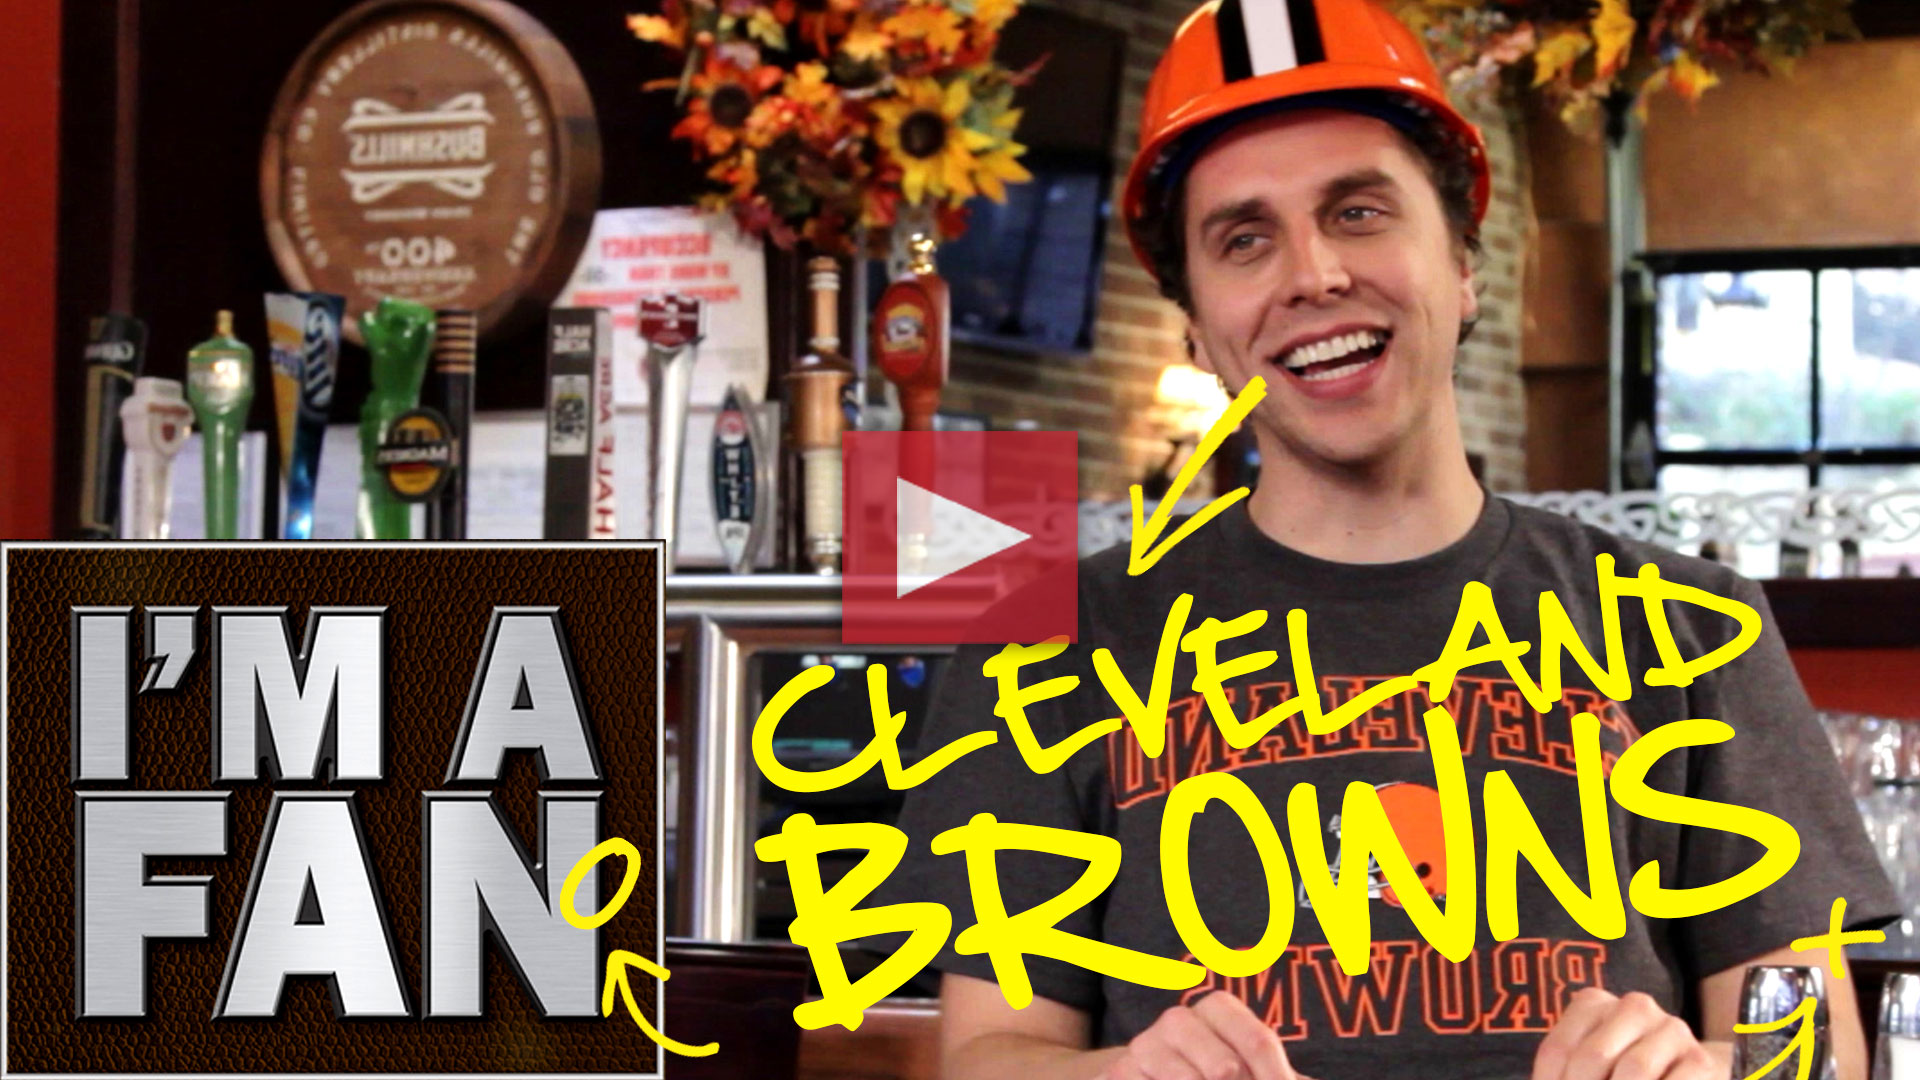 I'm A Fan – Cleveland Browns